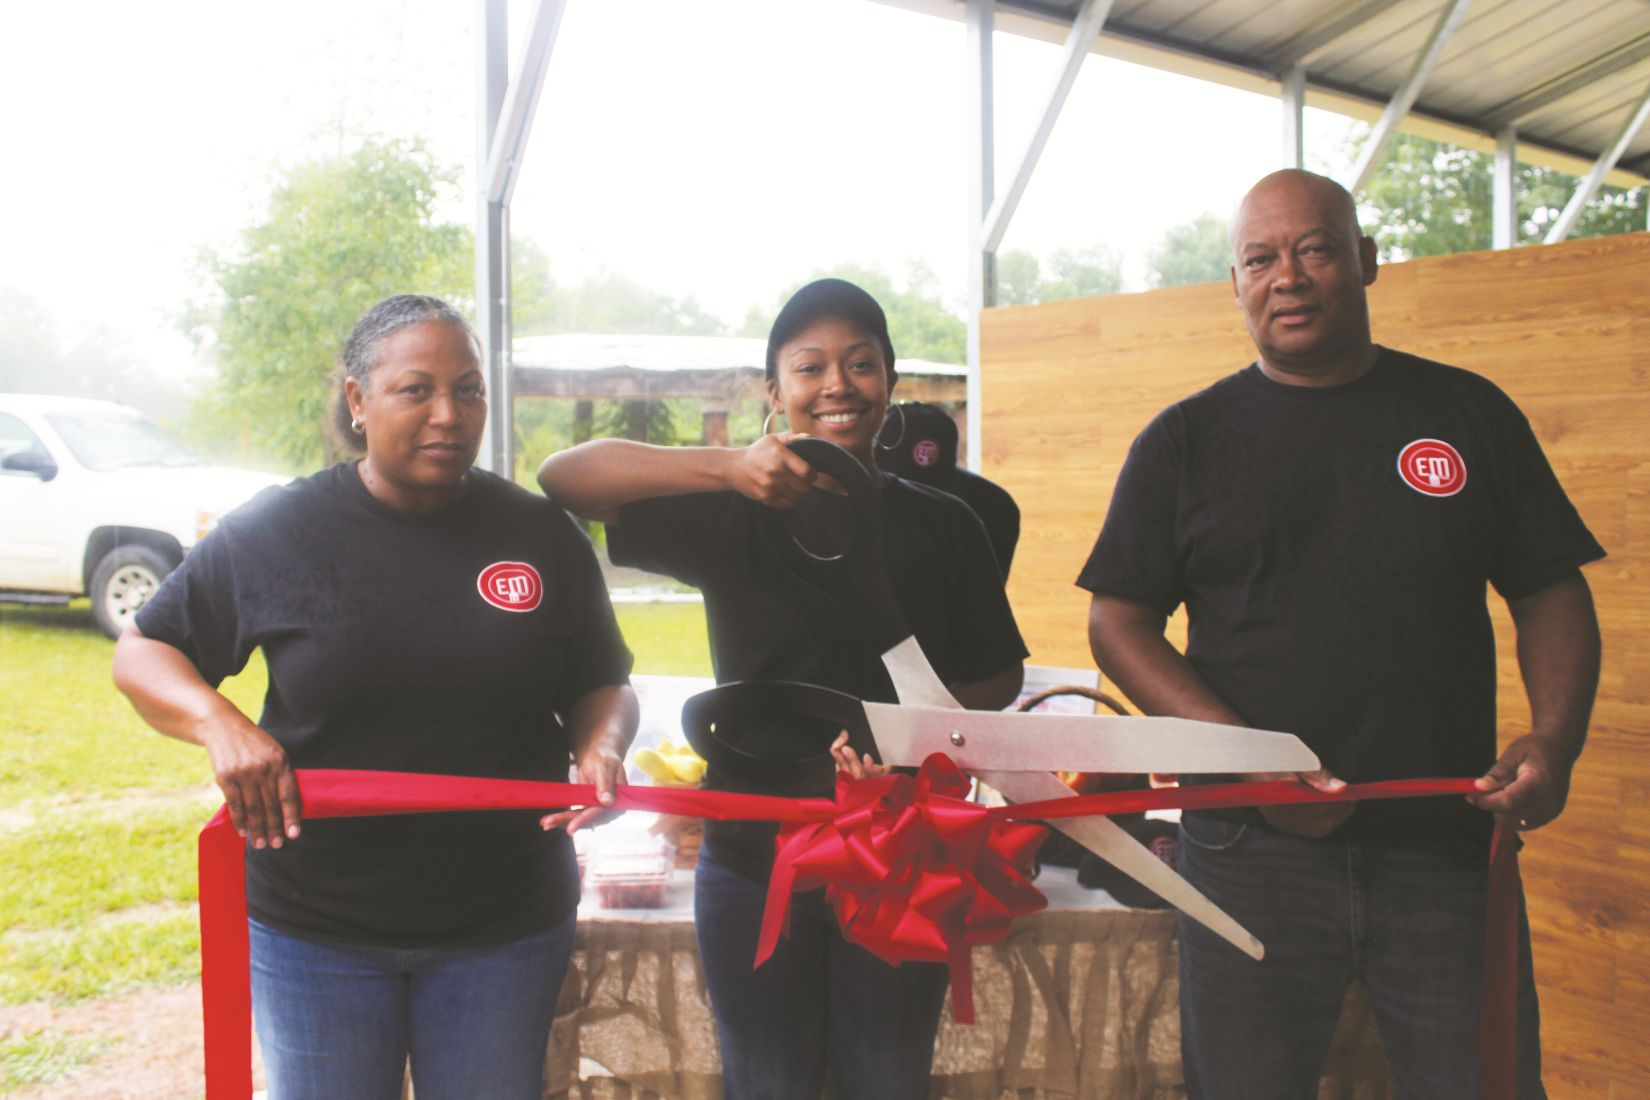 EM-Farms-Ribbon-cutting.jpg